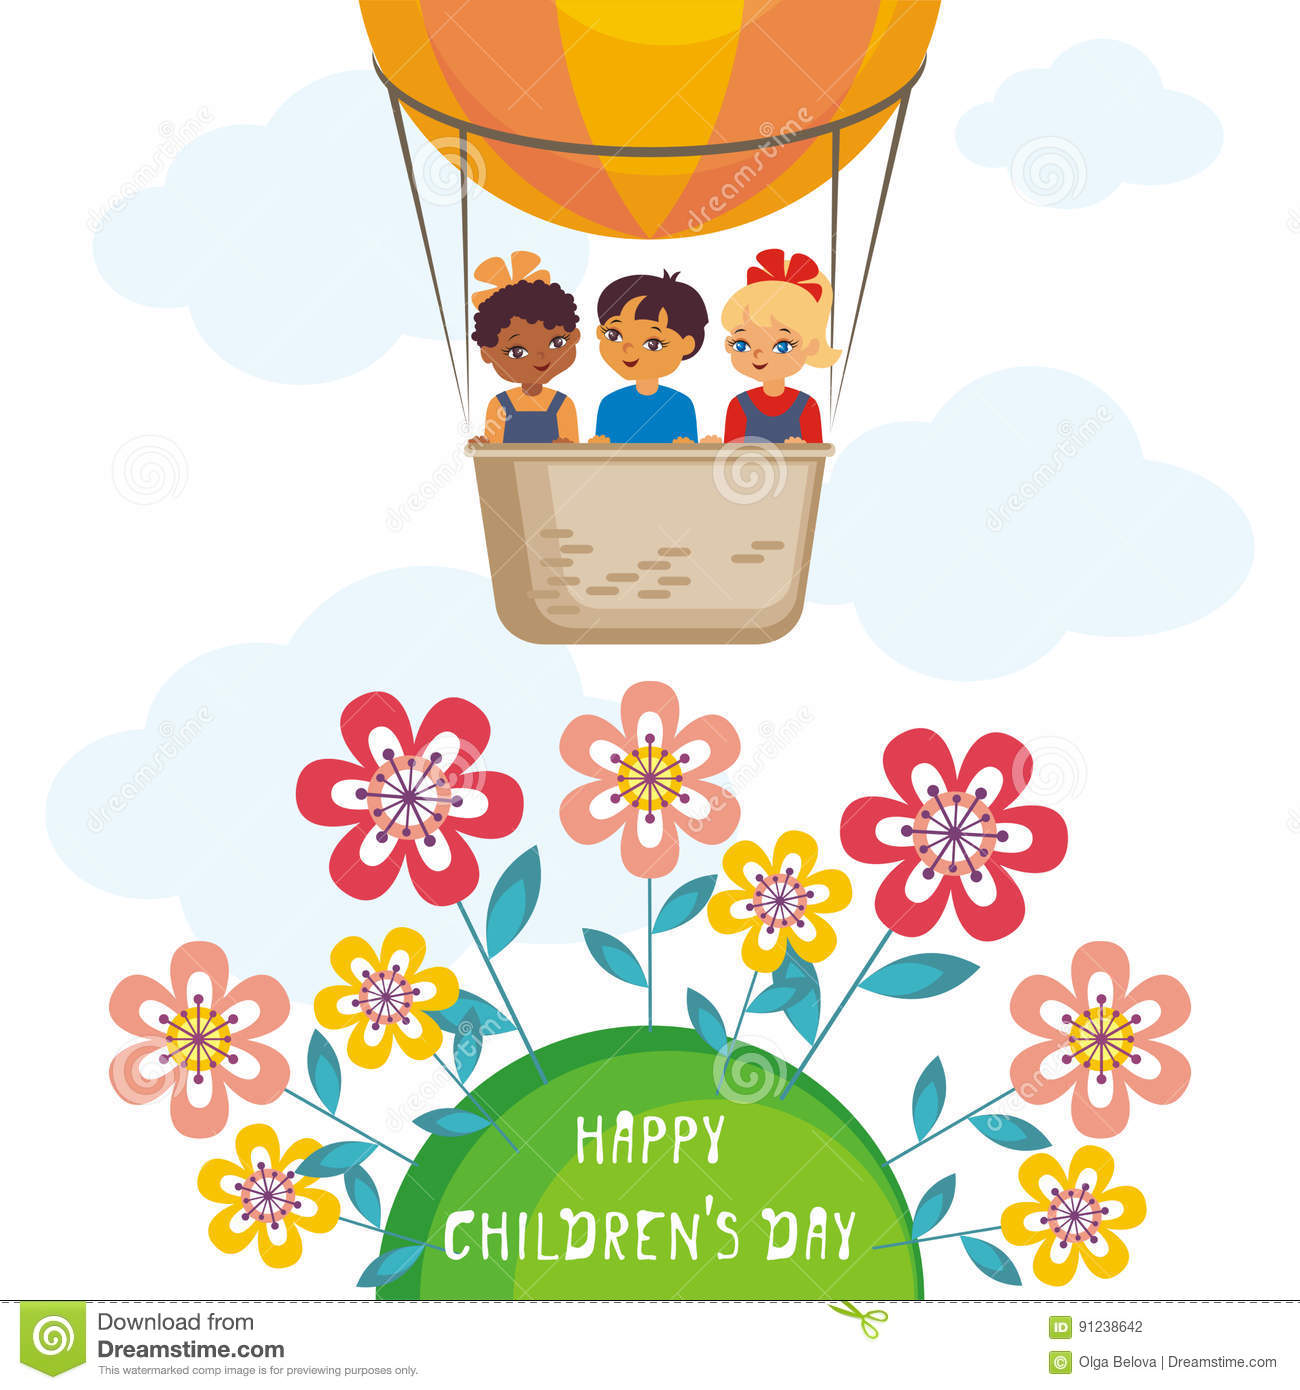 Happy Childrens Day Stock Vector Illustration Of Balloon 91238642